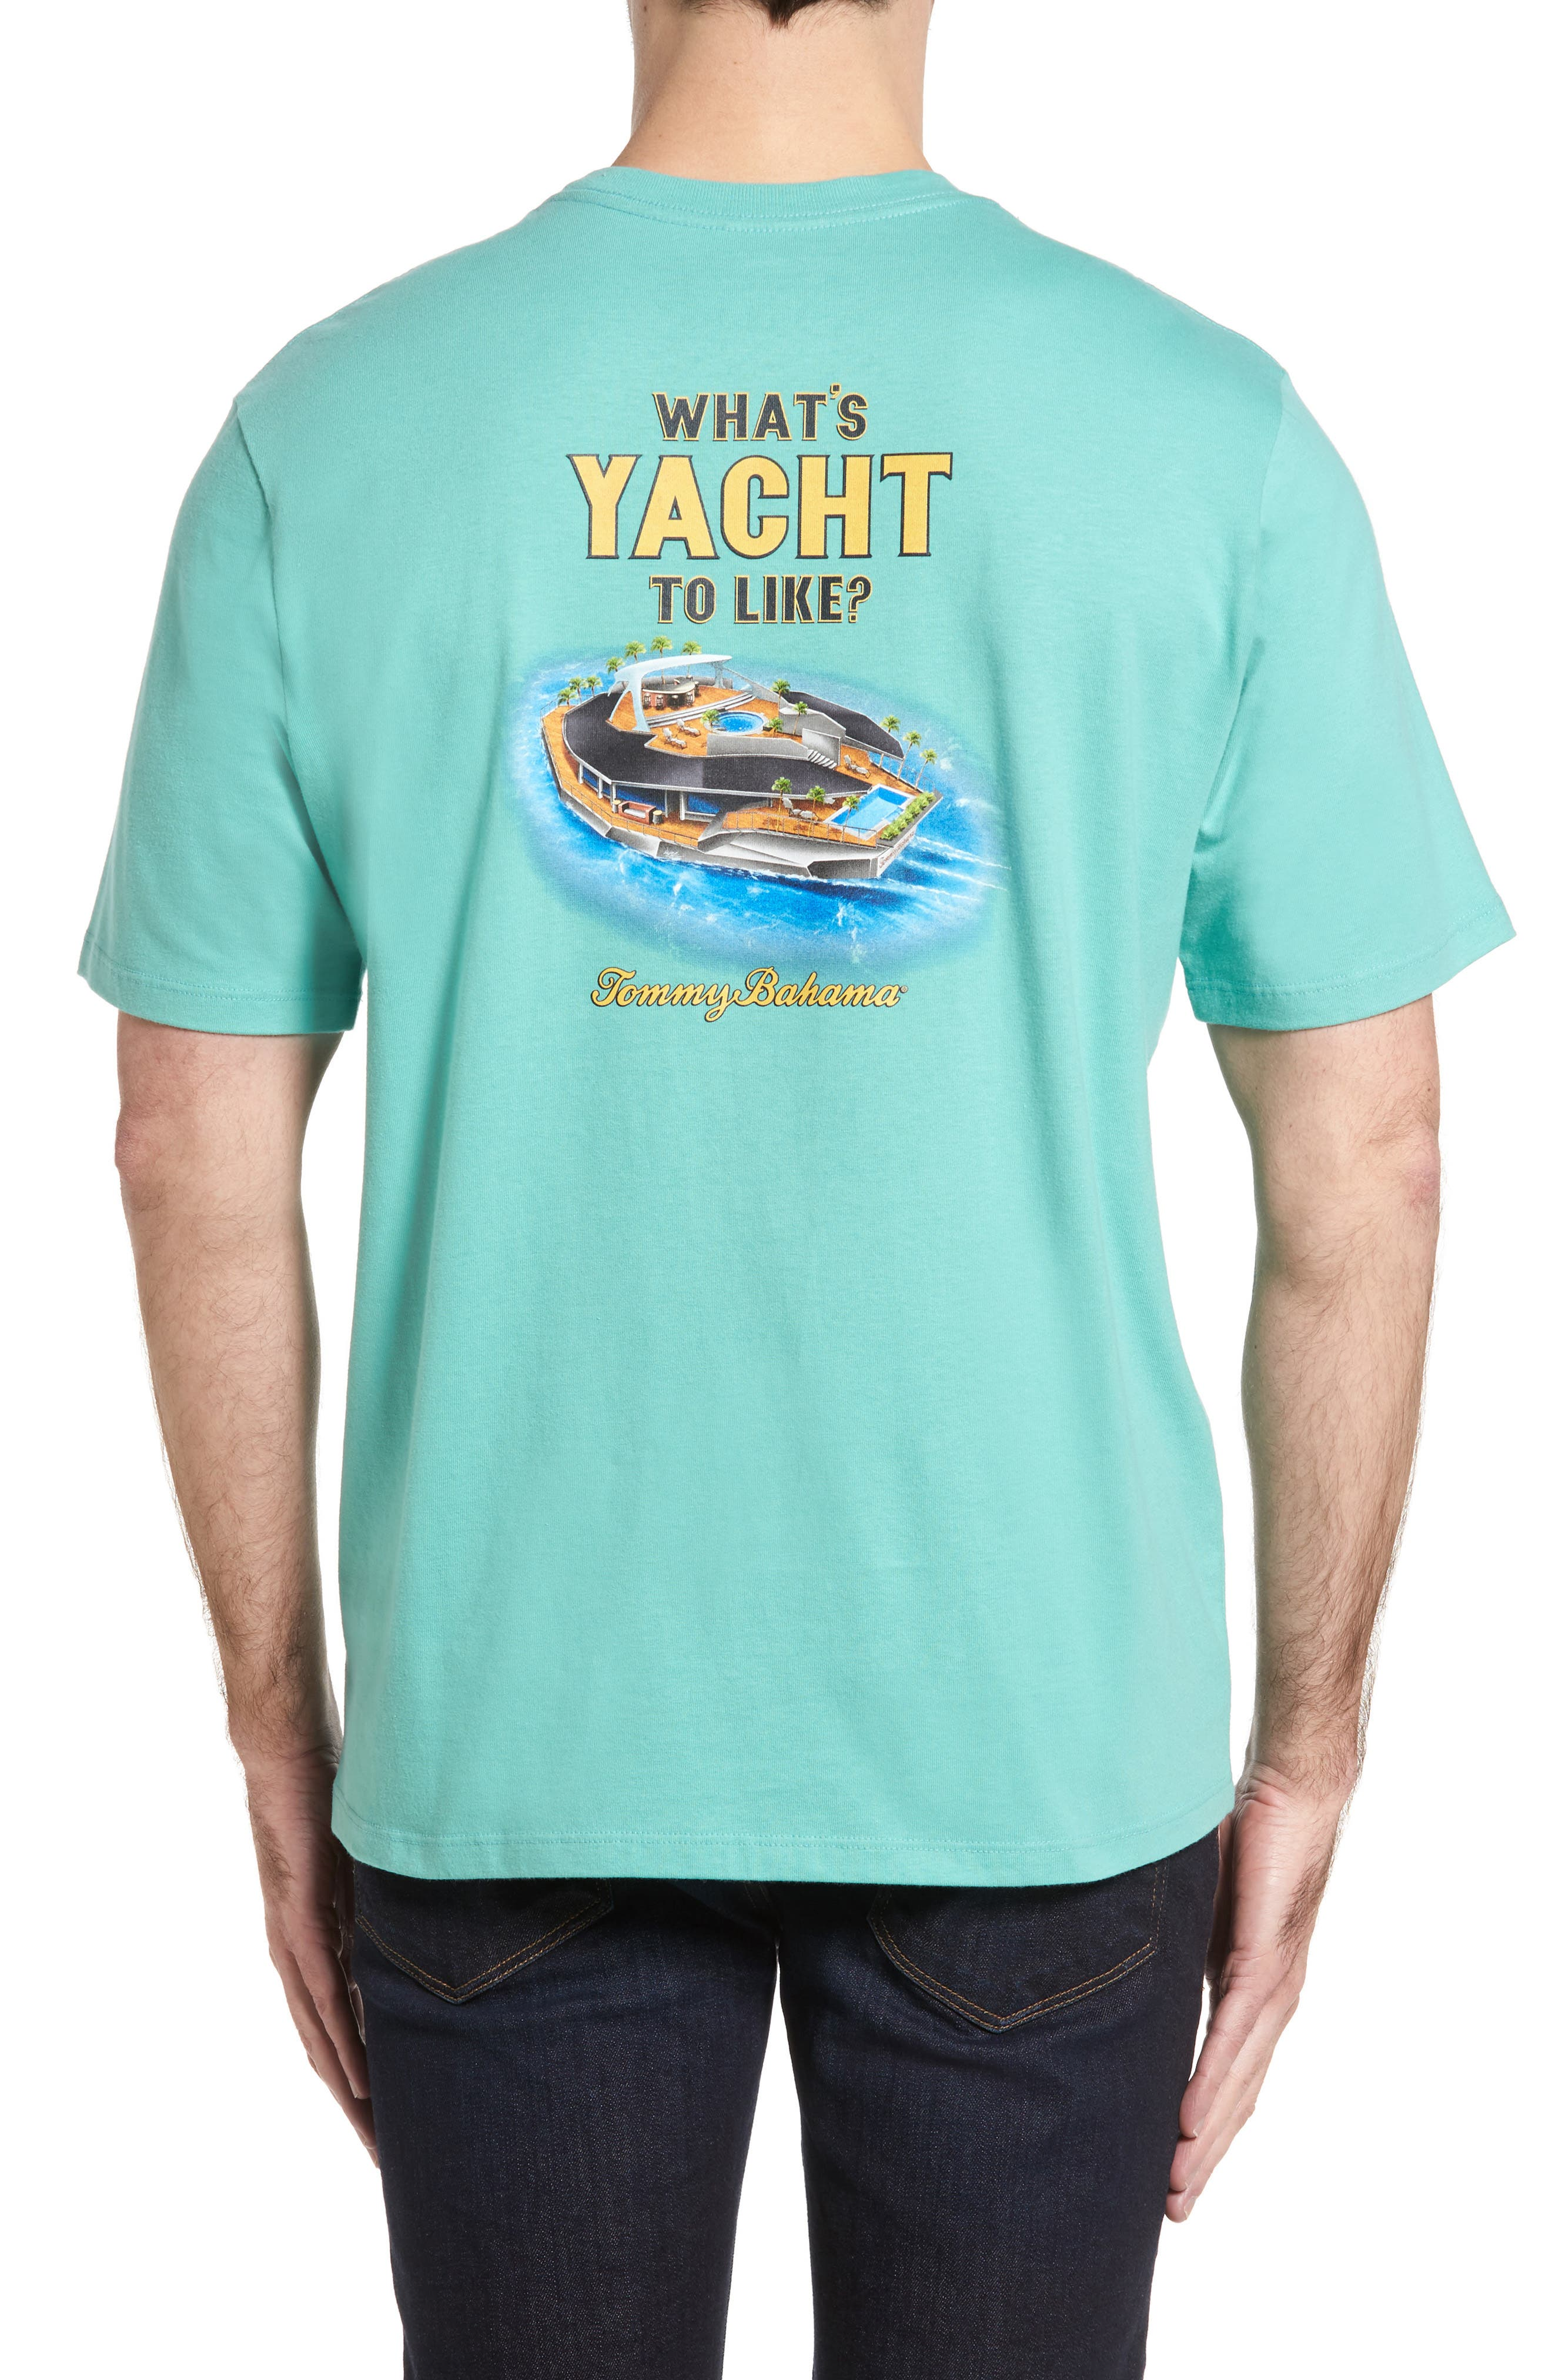 Alternate Image 1 Selected - Tommy Bahama What's Yacht to Like T-Shirt